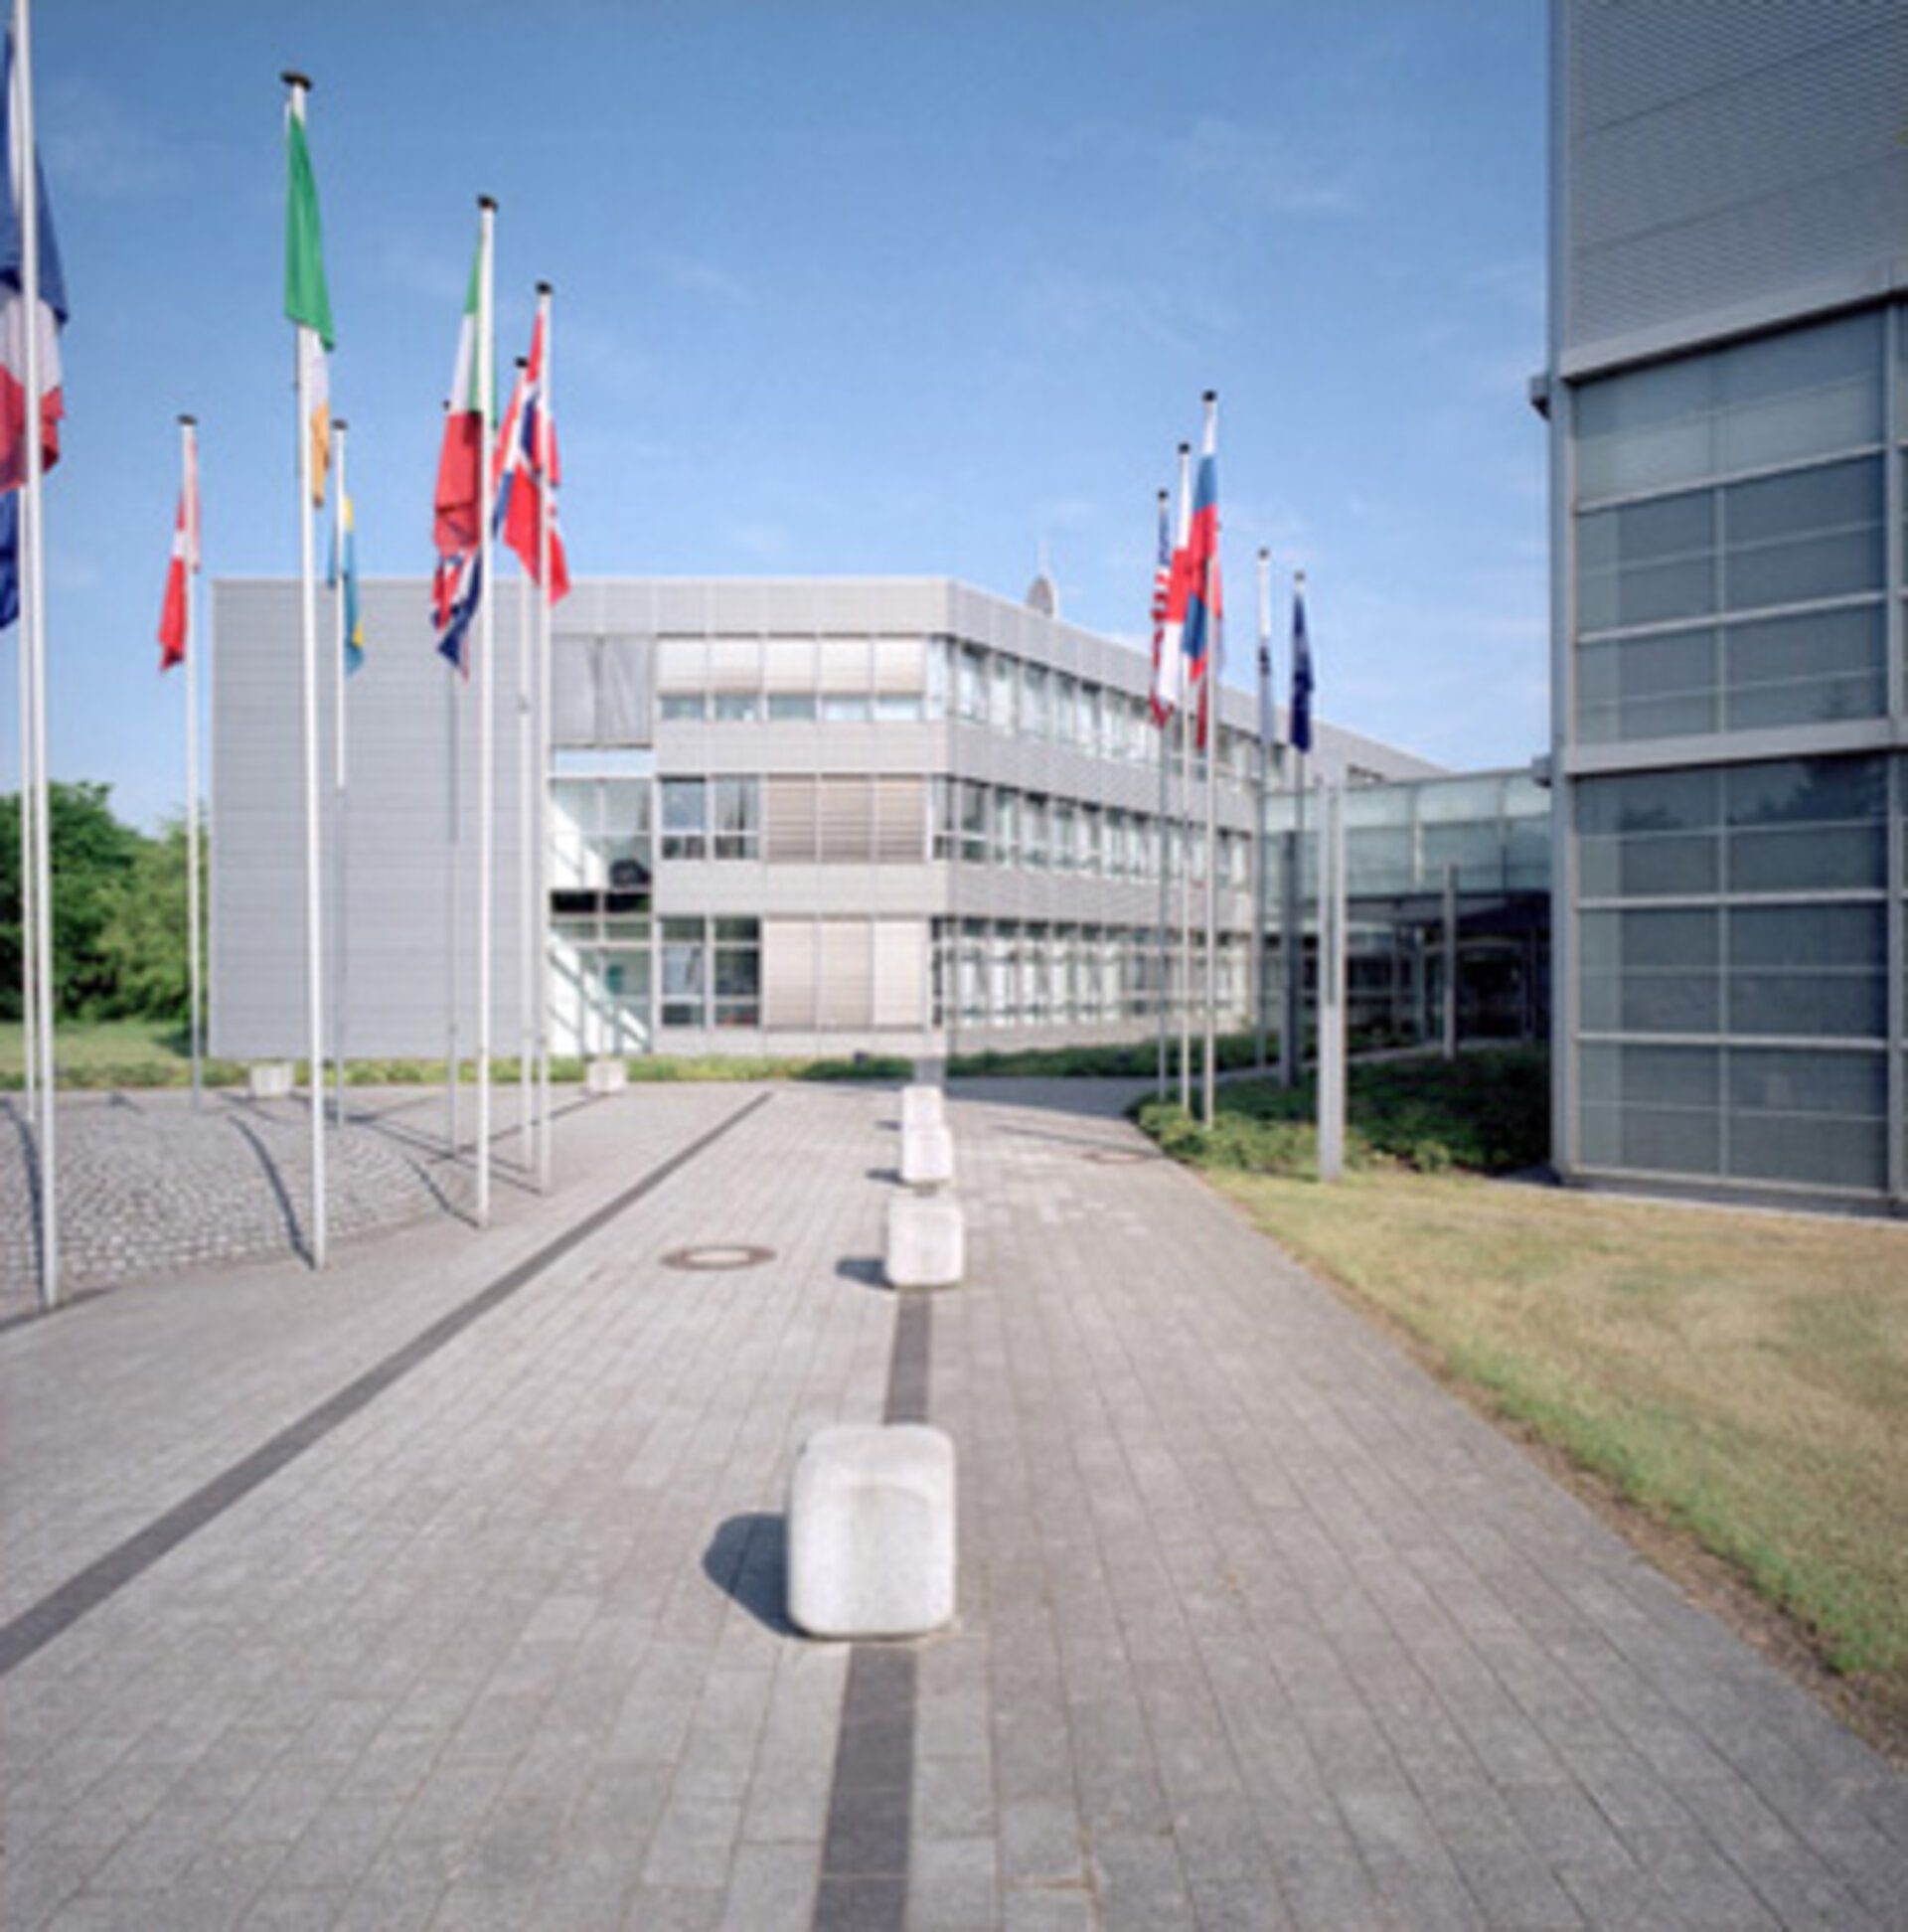 The European Astronaut Centre